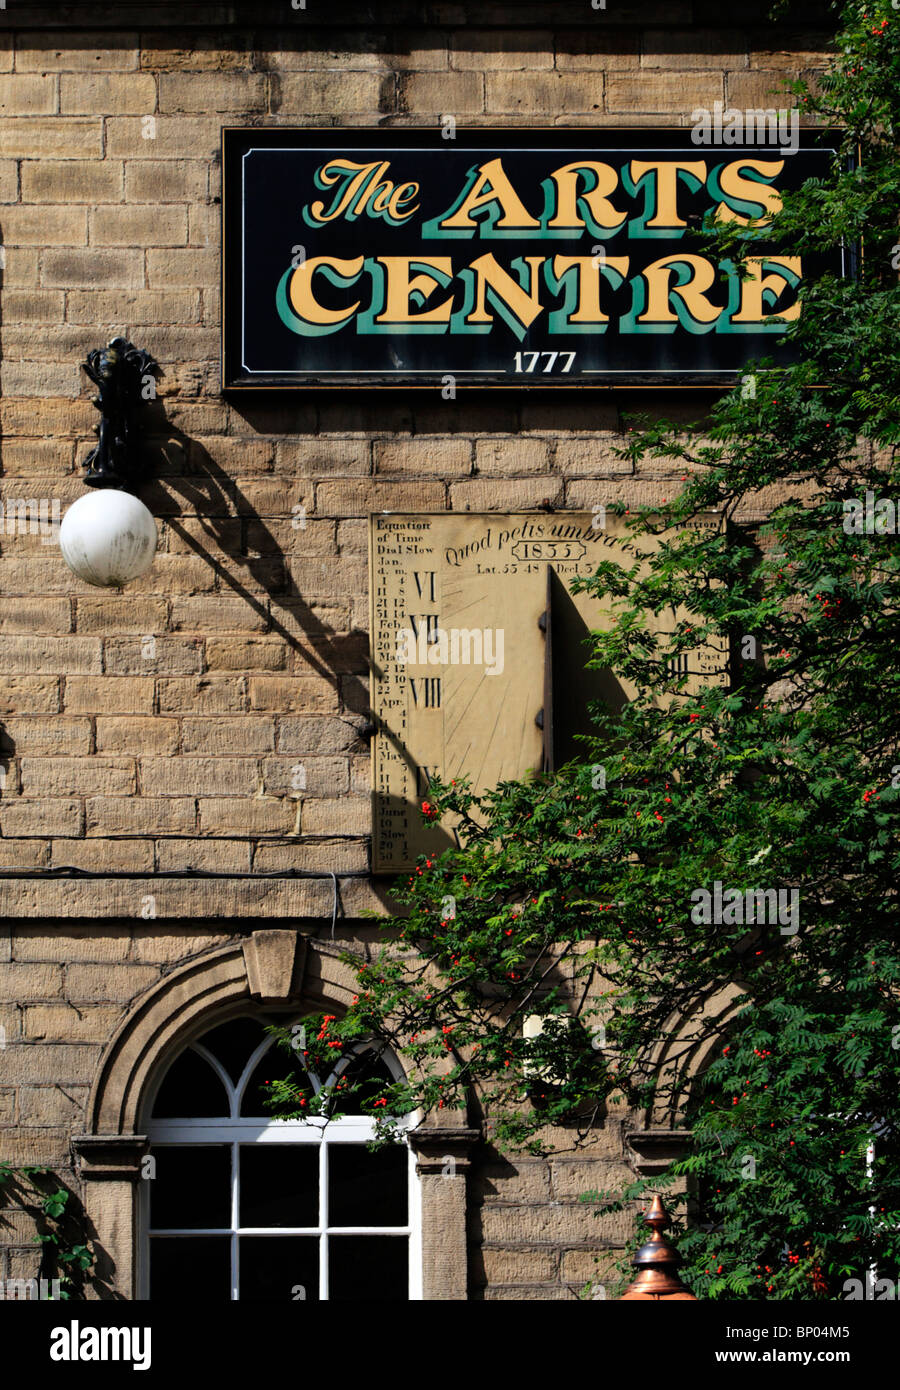 The Arts Centre in Hebden Bridge, West Yorkshire - Stock Image